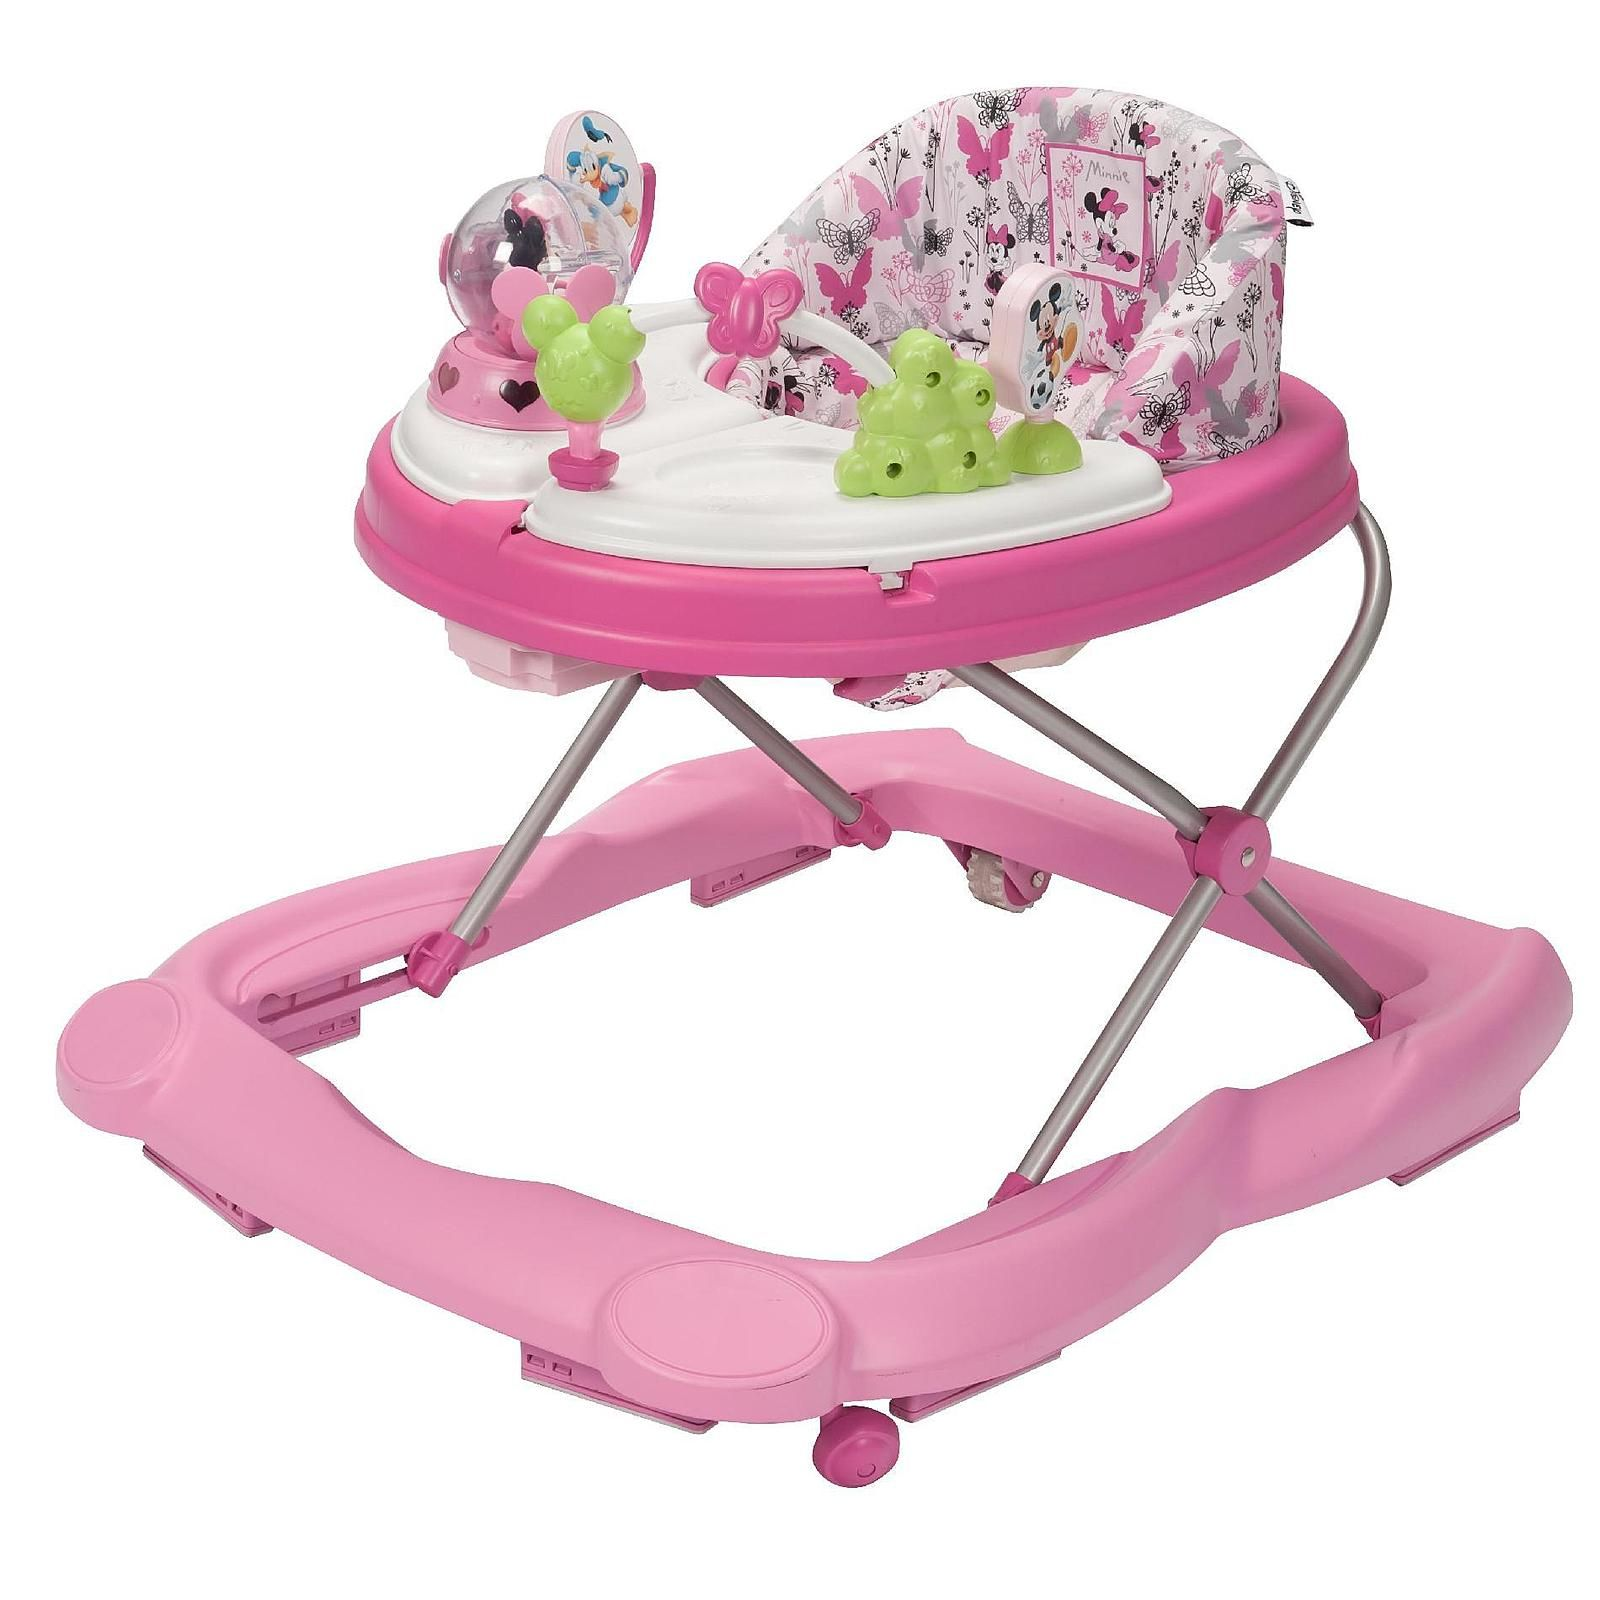 Chicco polly se high chair perseo modern high chairs and booster - The Disney Baby Minnie Mouse Ribbons Music Lights Walker Offers Plenty Of Fun For